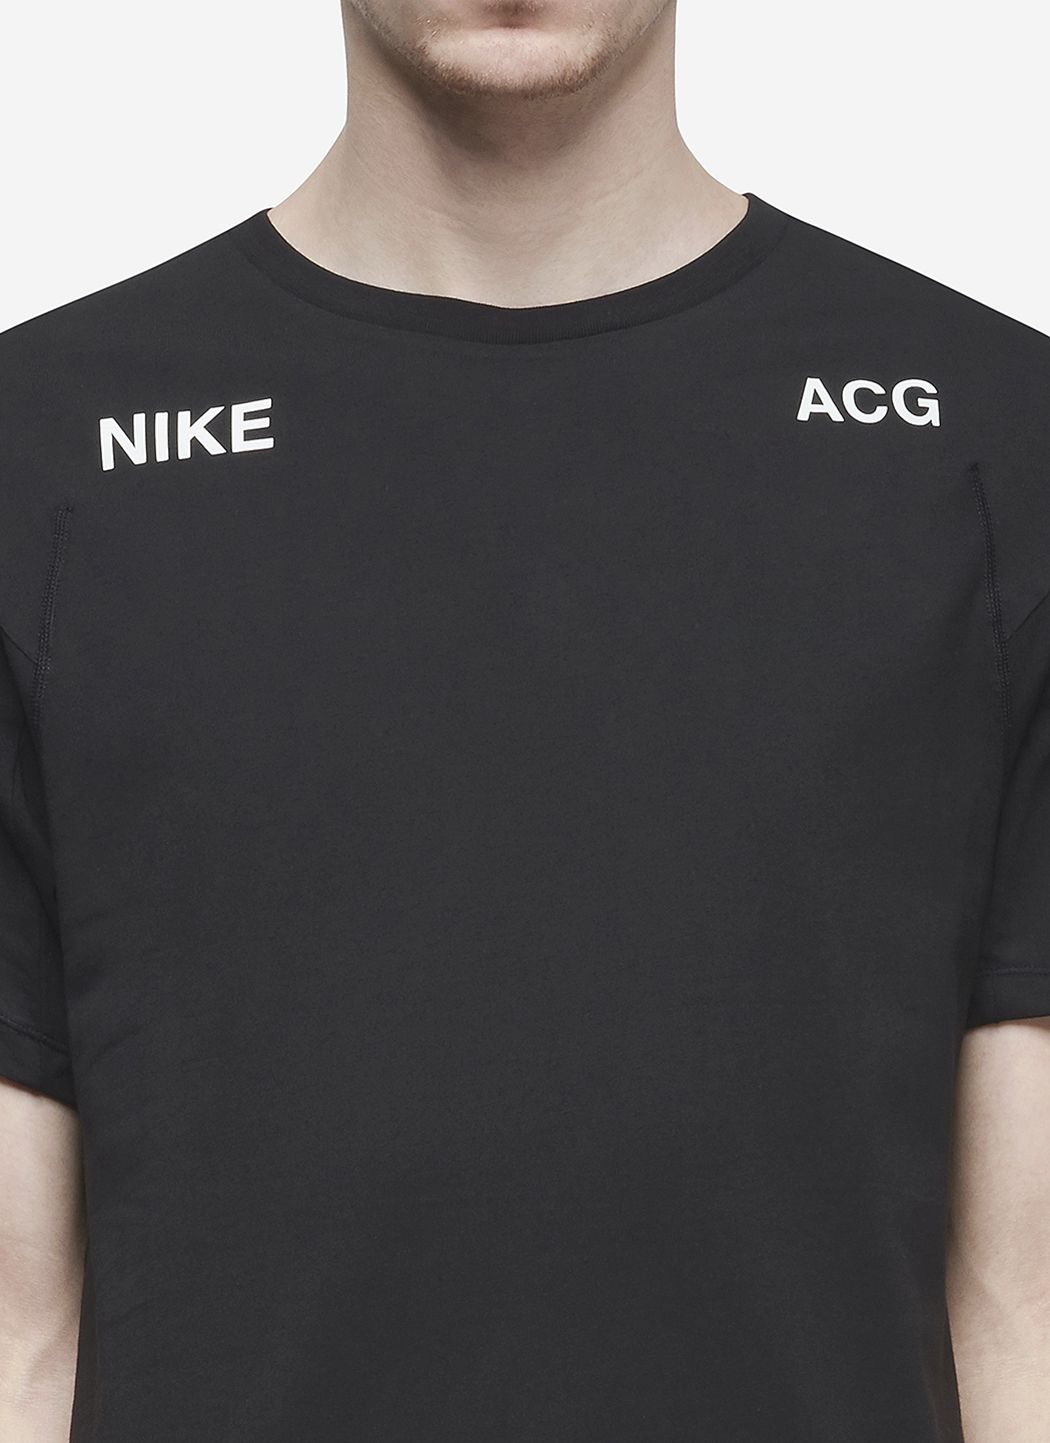 Nikelab ACG T-Shirt in Black / Barely Green 05